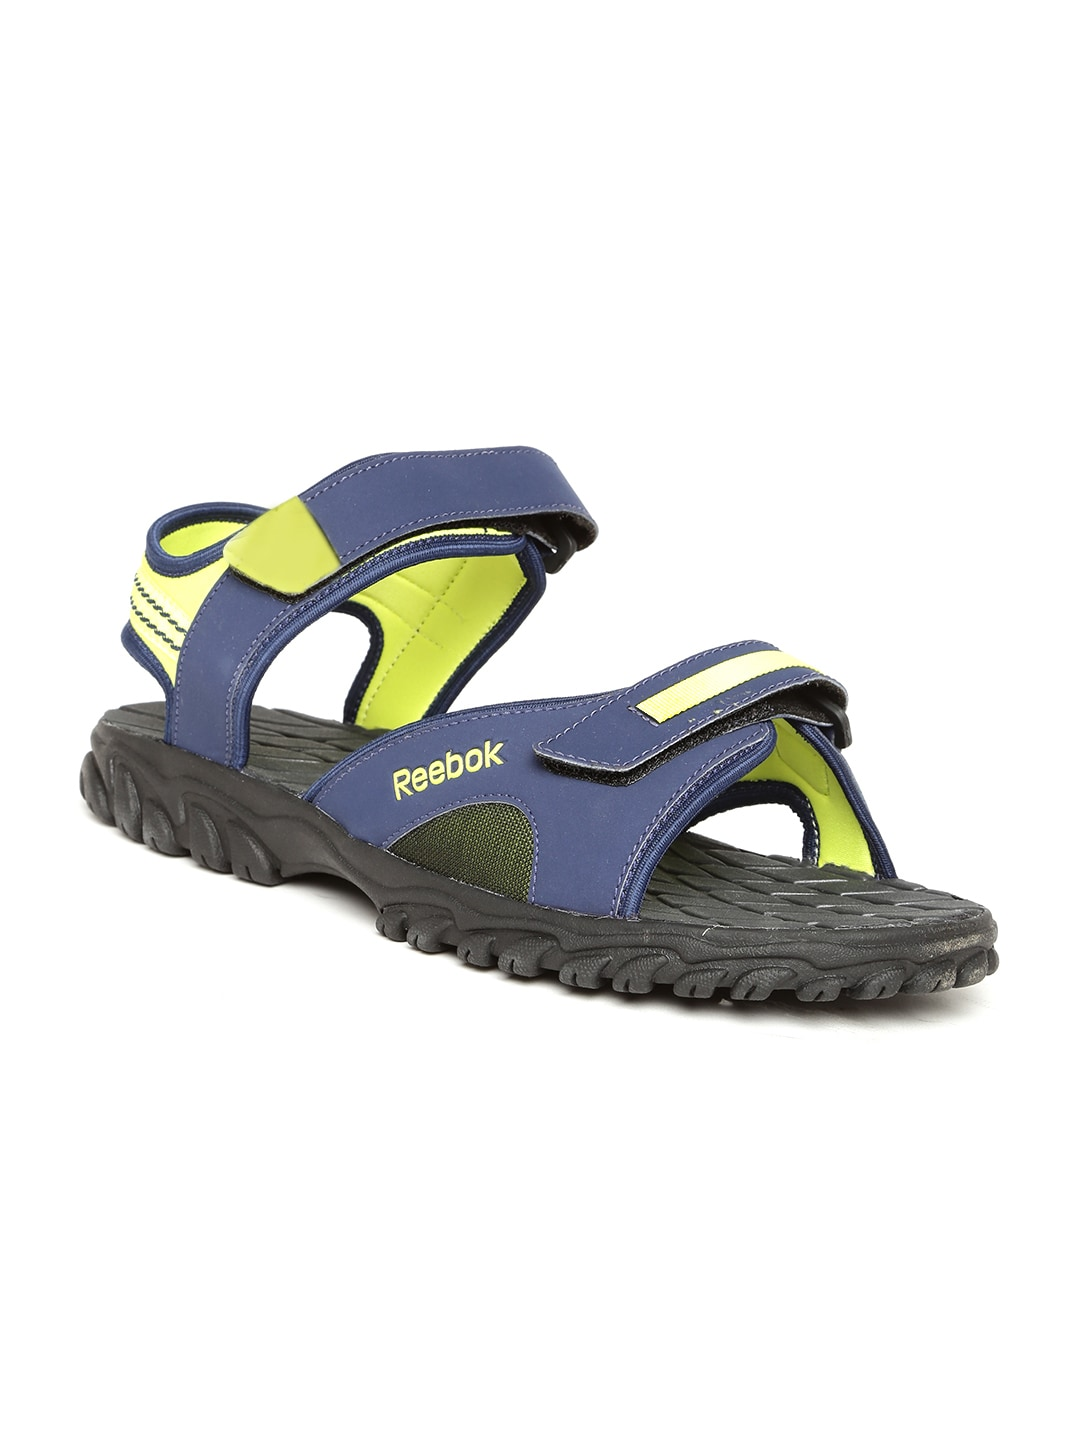 a019c7abf5c782 Reebok ar1802 Men Navy And Lime Green Adventure Chrome Sports Sandals-  Price in India